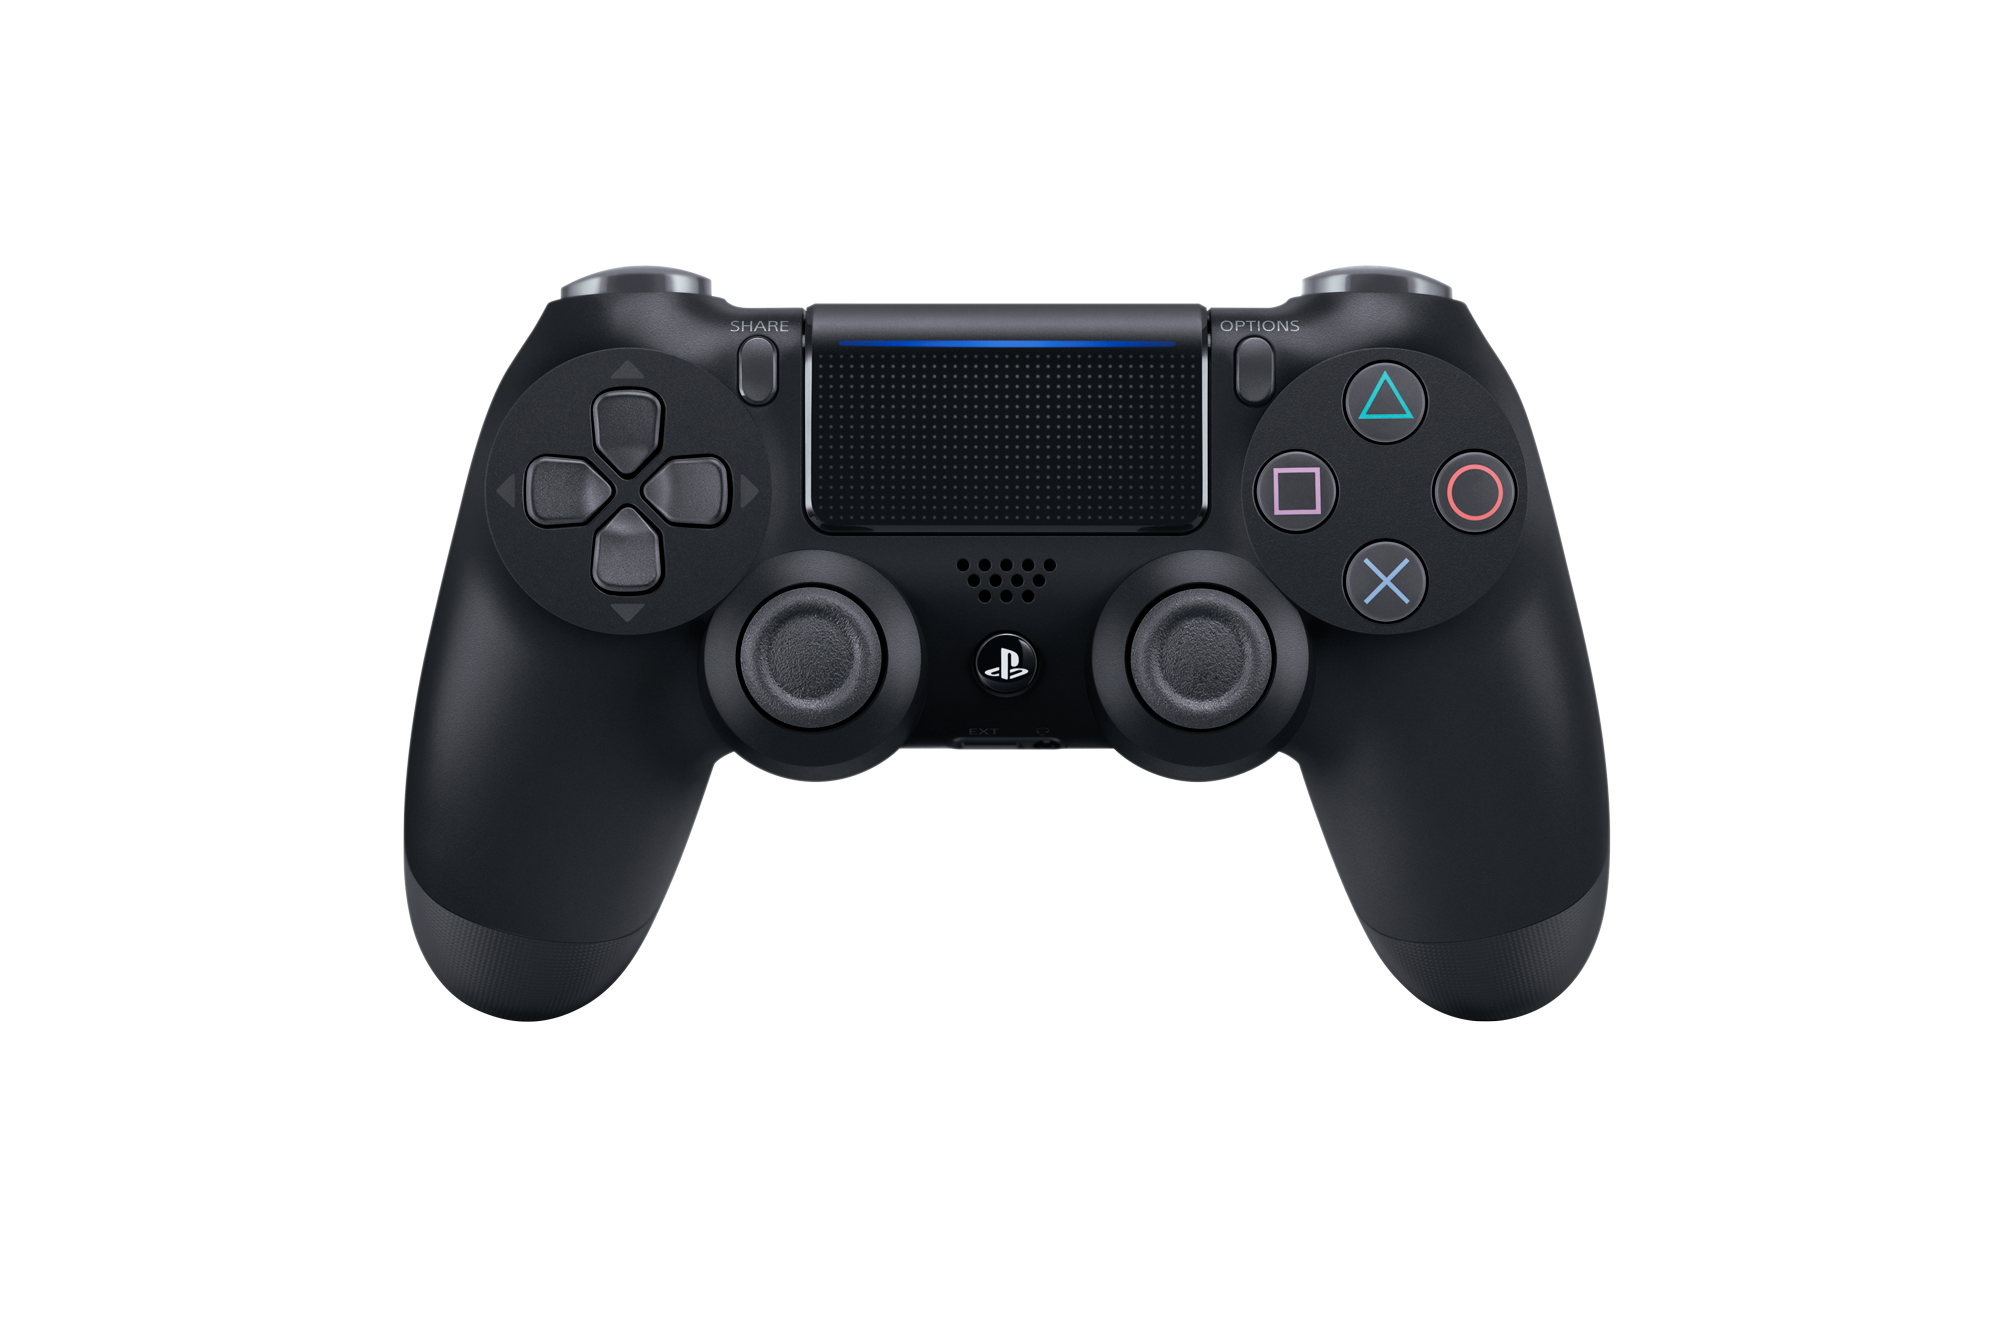 Геймпад new Sony PlayStation DualShock 4 (PS4) playstation 4